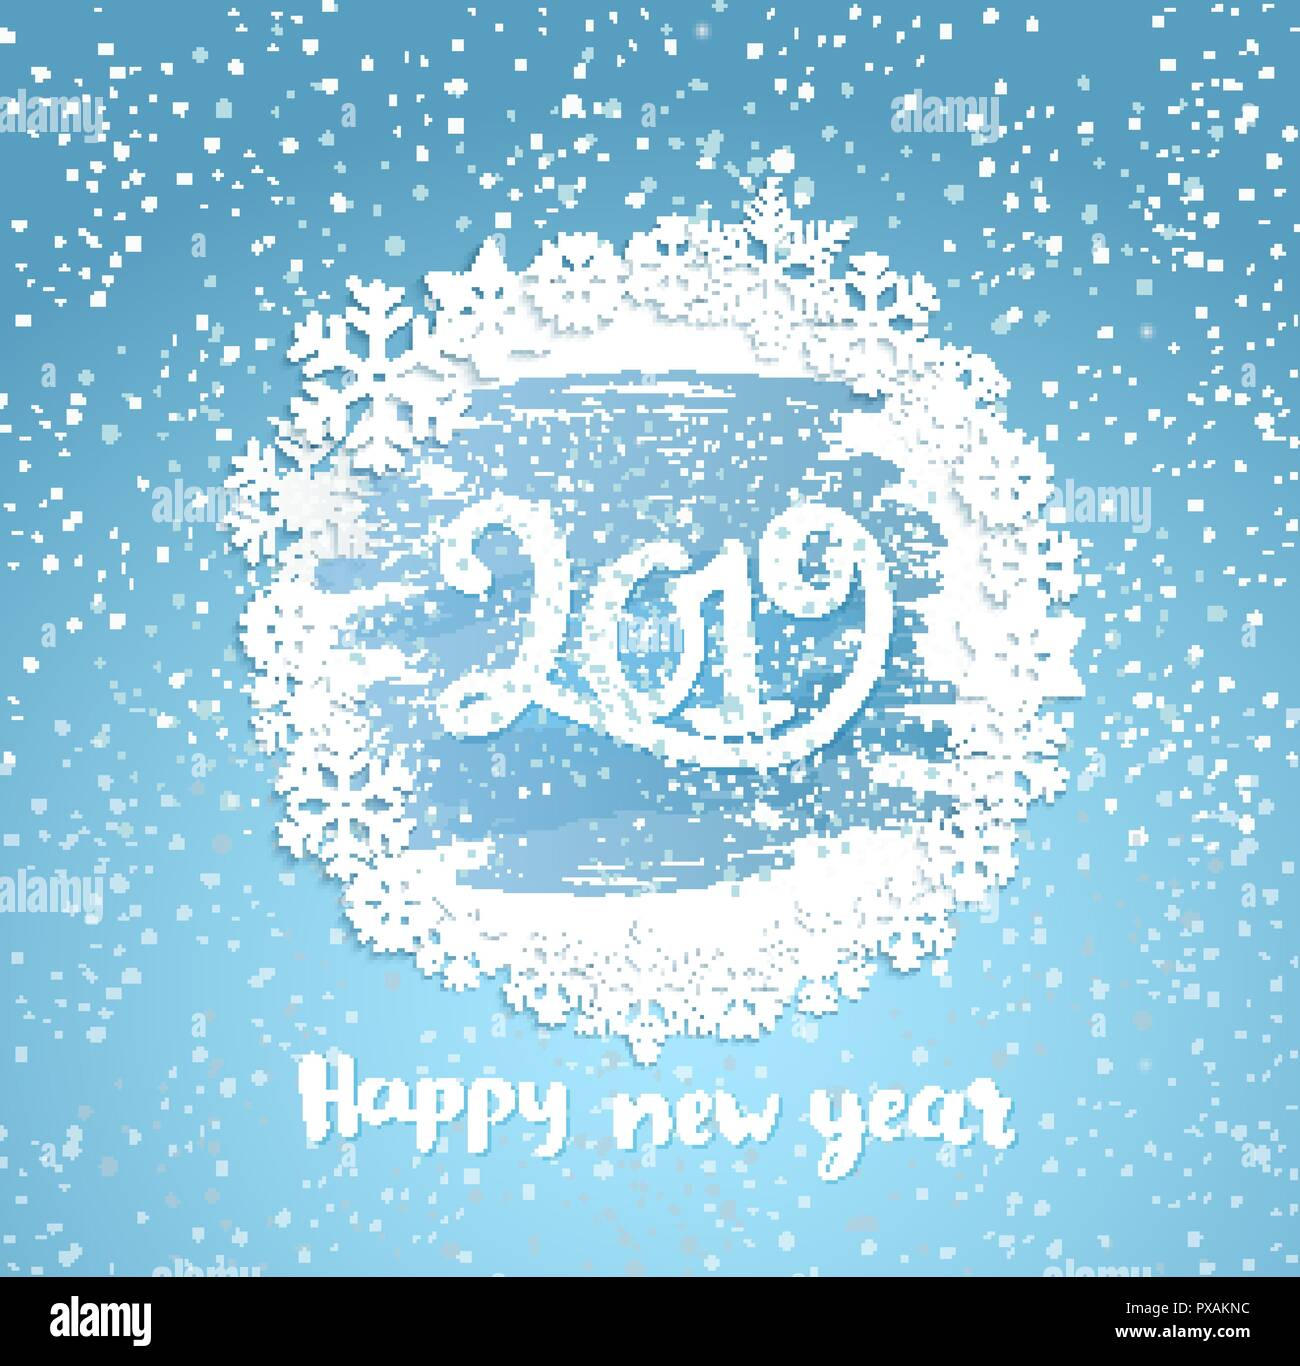 2019 happy new year greeting card with vintage frame from snowflakes on frosty window greeting new year with wishing happy holidays hand drawn lettering